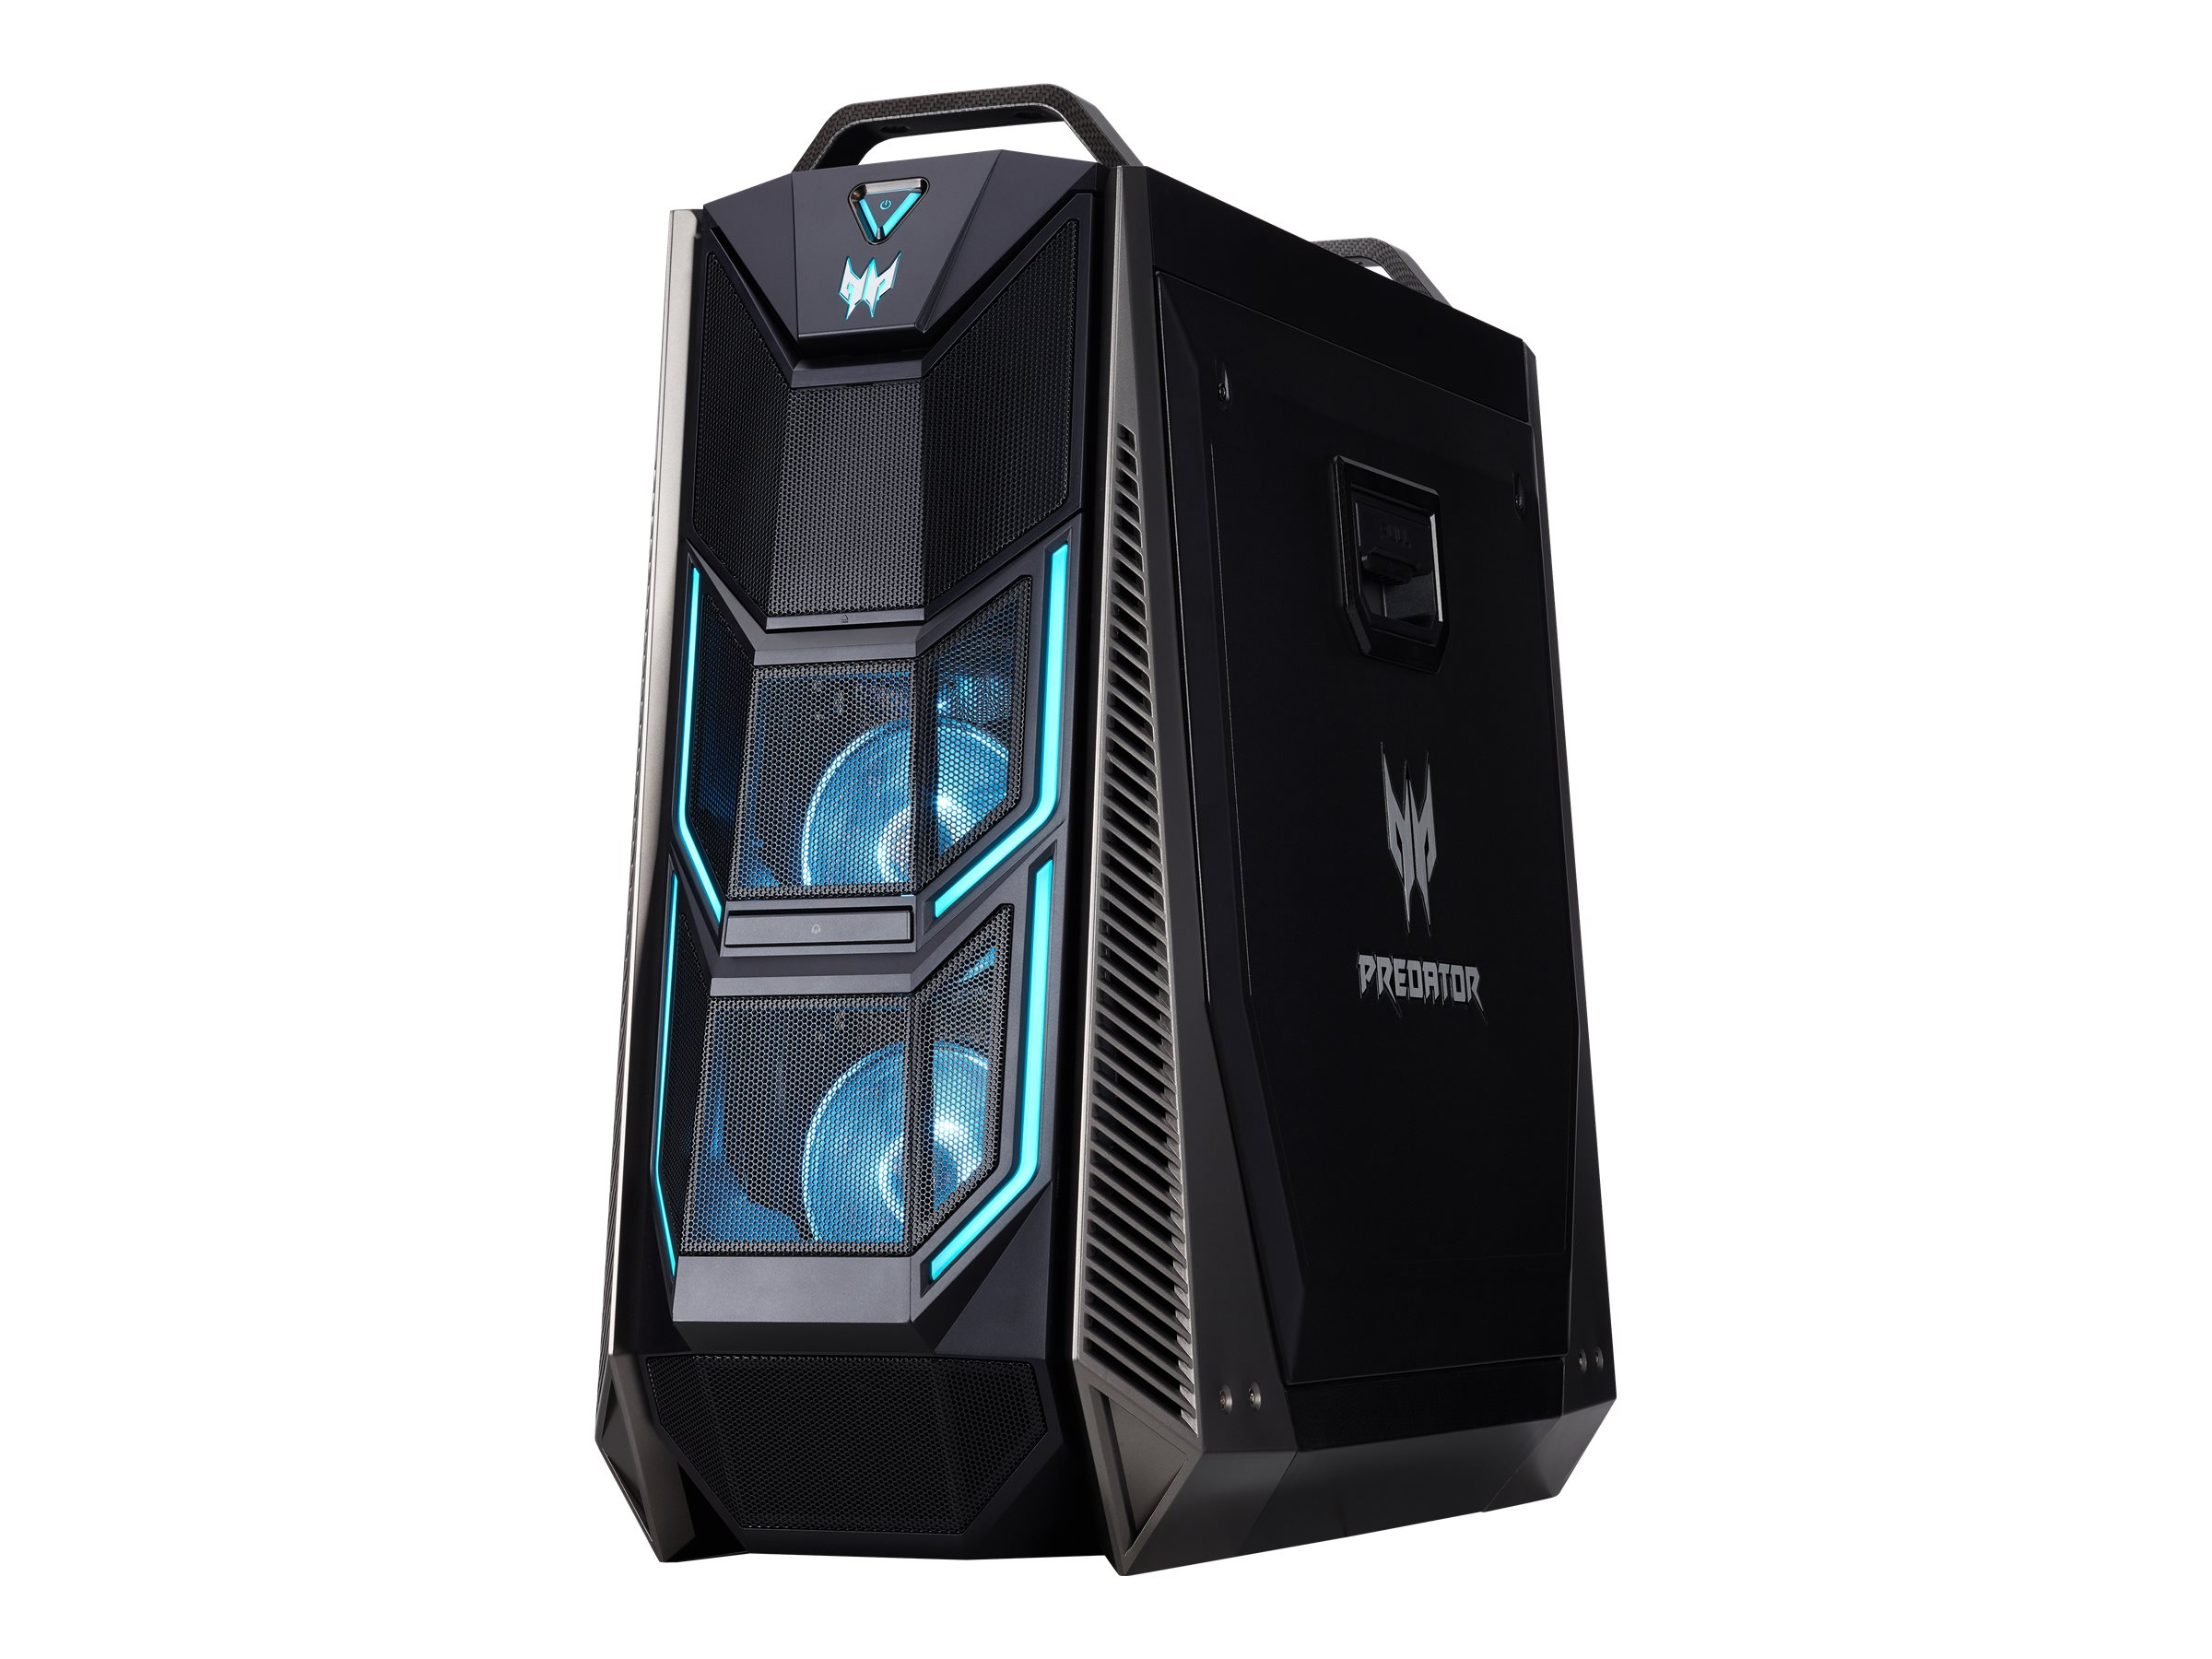 Acer Predator Orion 9000 PO9-600 - tower - Core i7 8700K 3.7 GHz - 32 GB - SSD 512 GB, HDD 2 TB